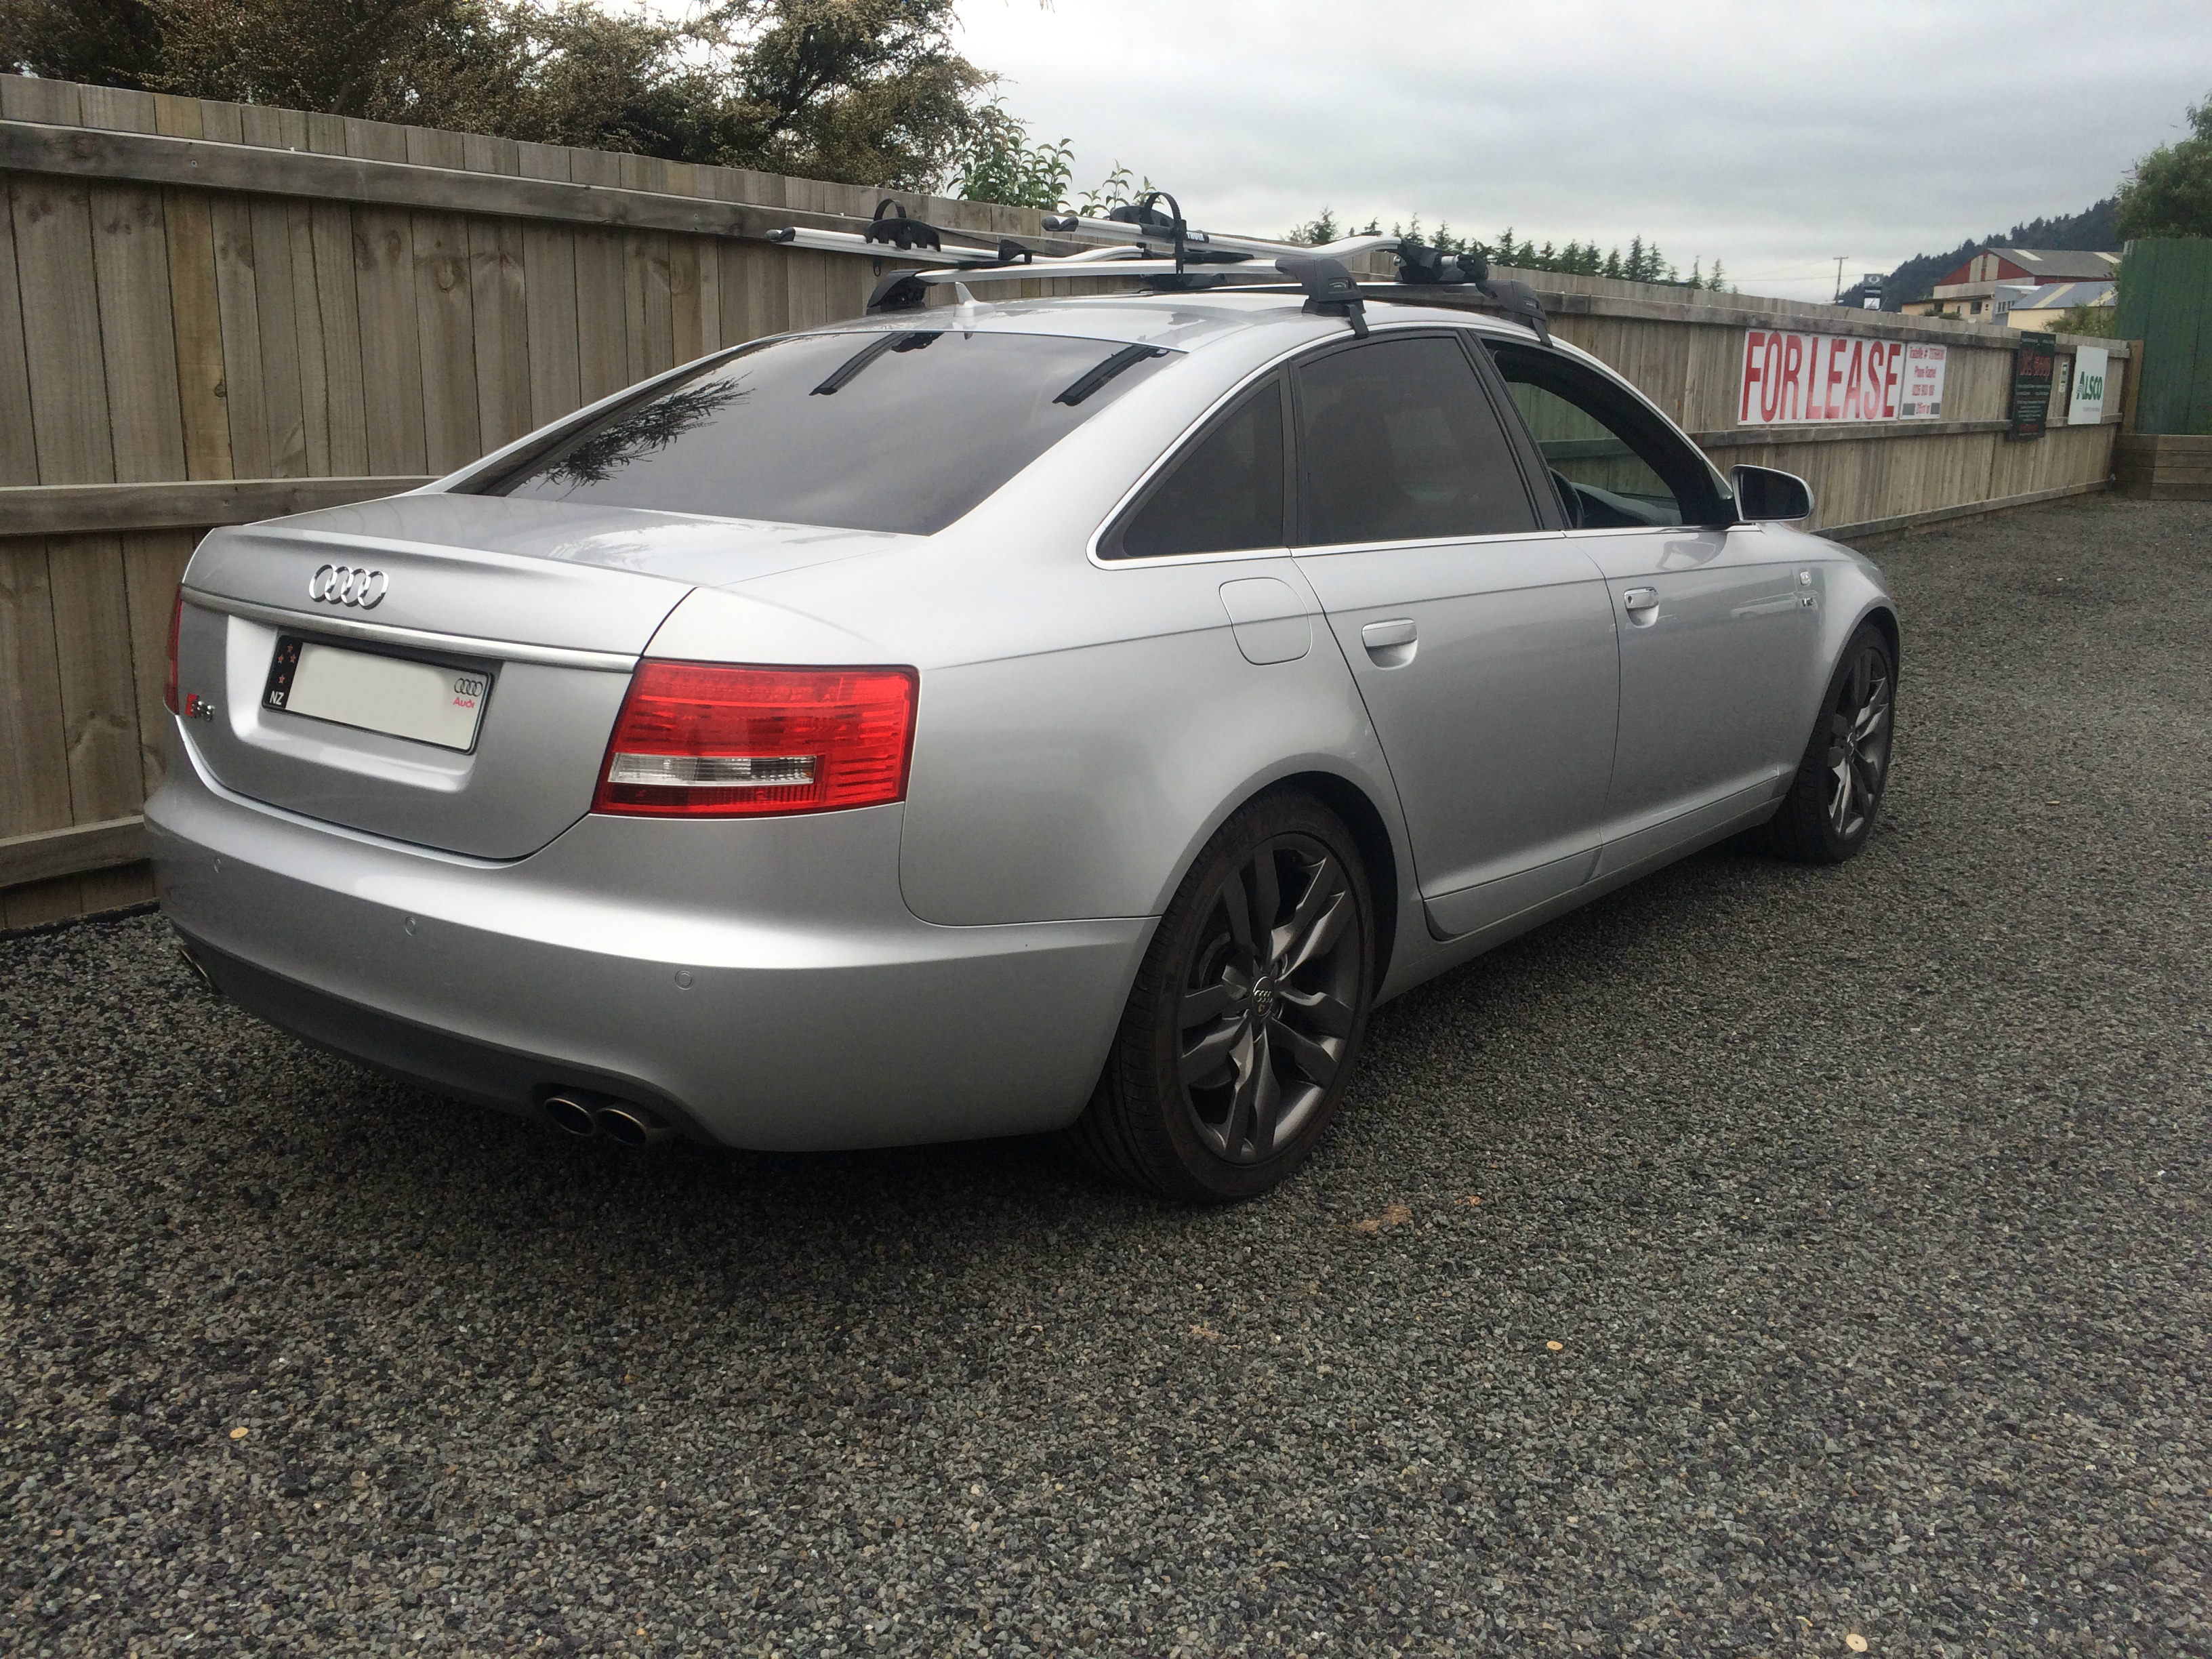 Audi S Ltr V ECU Tuning Performance By Power Torque NZ - V10 audi s6